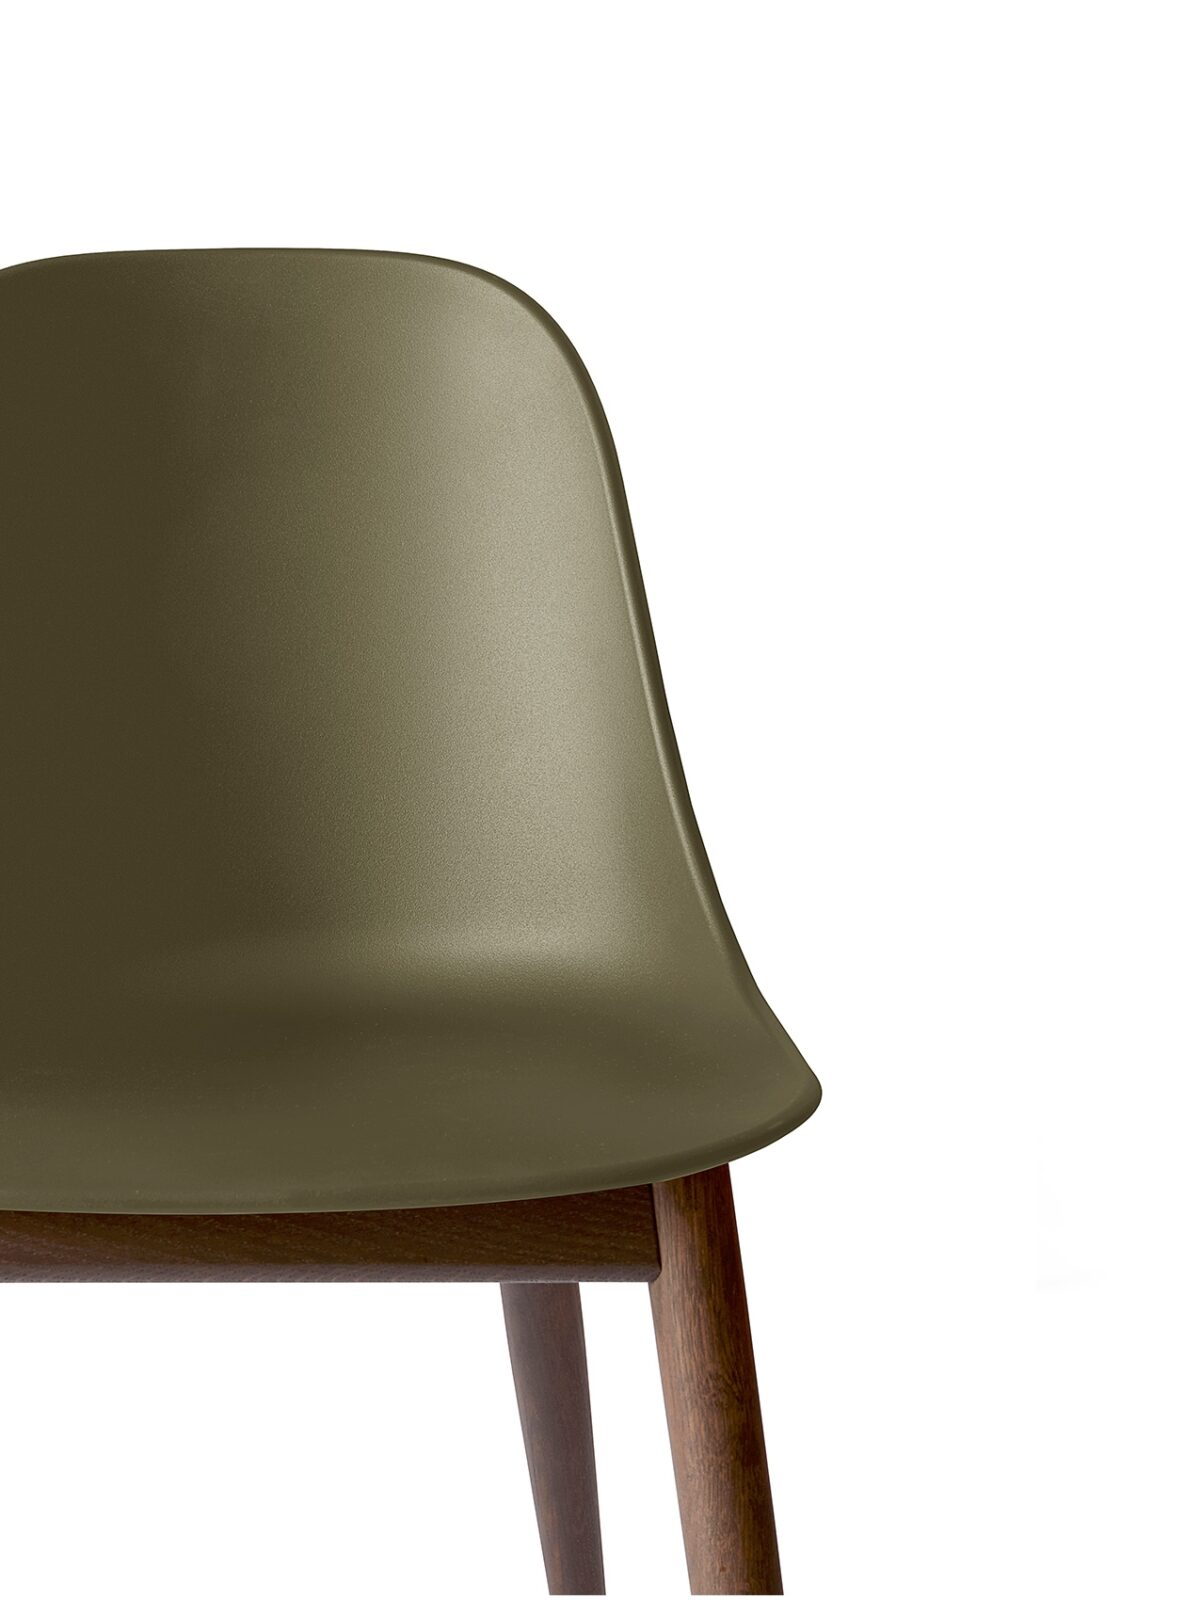 9278429 Harbour Side Chair Olive DarkStainedOak CloseUp